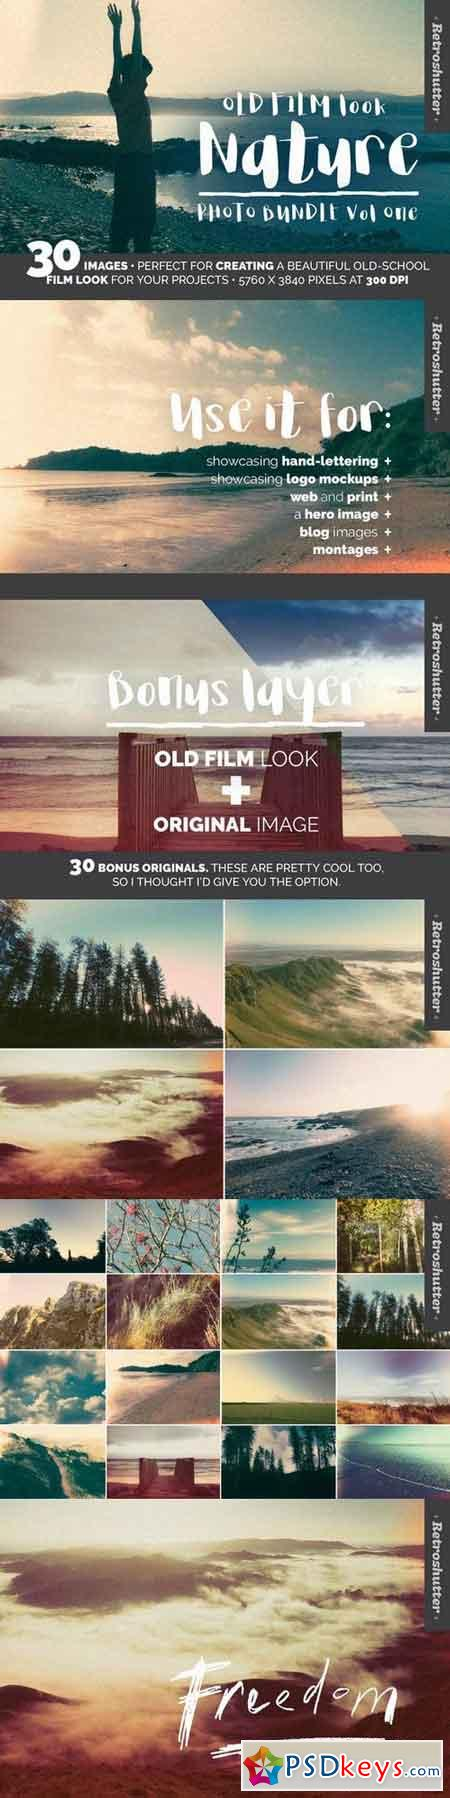 Old Film-Look Nature Images Vol One 906656